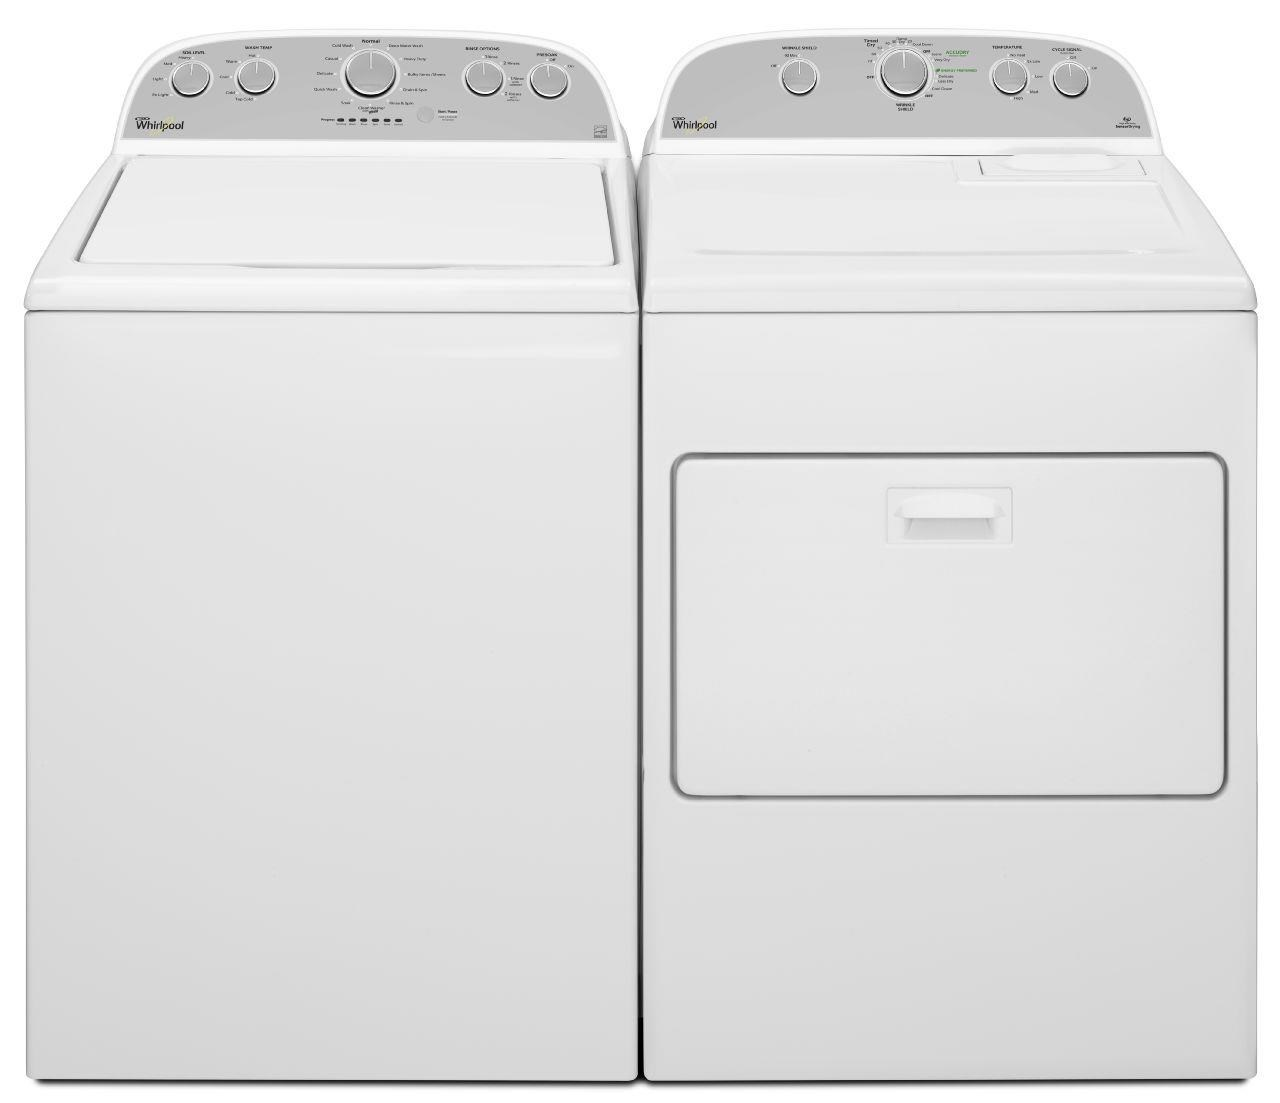 2006 Whirlpool Electric Dryer Just Another Wiring Diagram Blog For Duet Wtw5000dw Wed5000dw4 3 Cu Ft Cabrio High Efficiency Top Rh Furnitureappliancemart Com